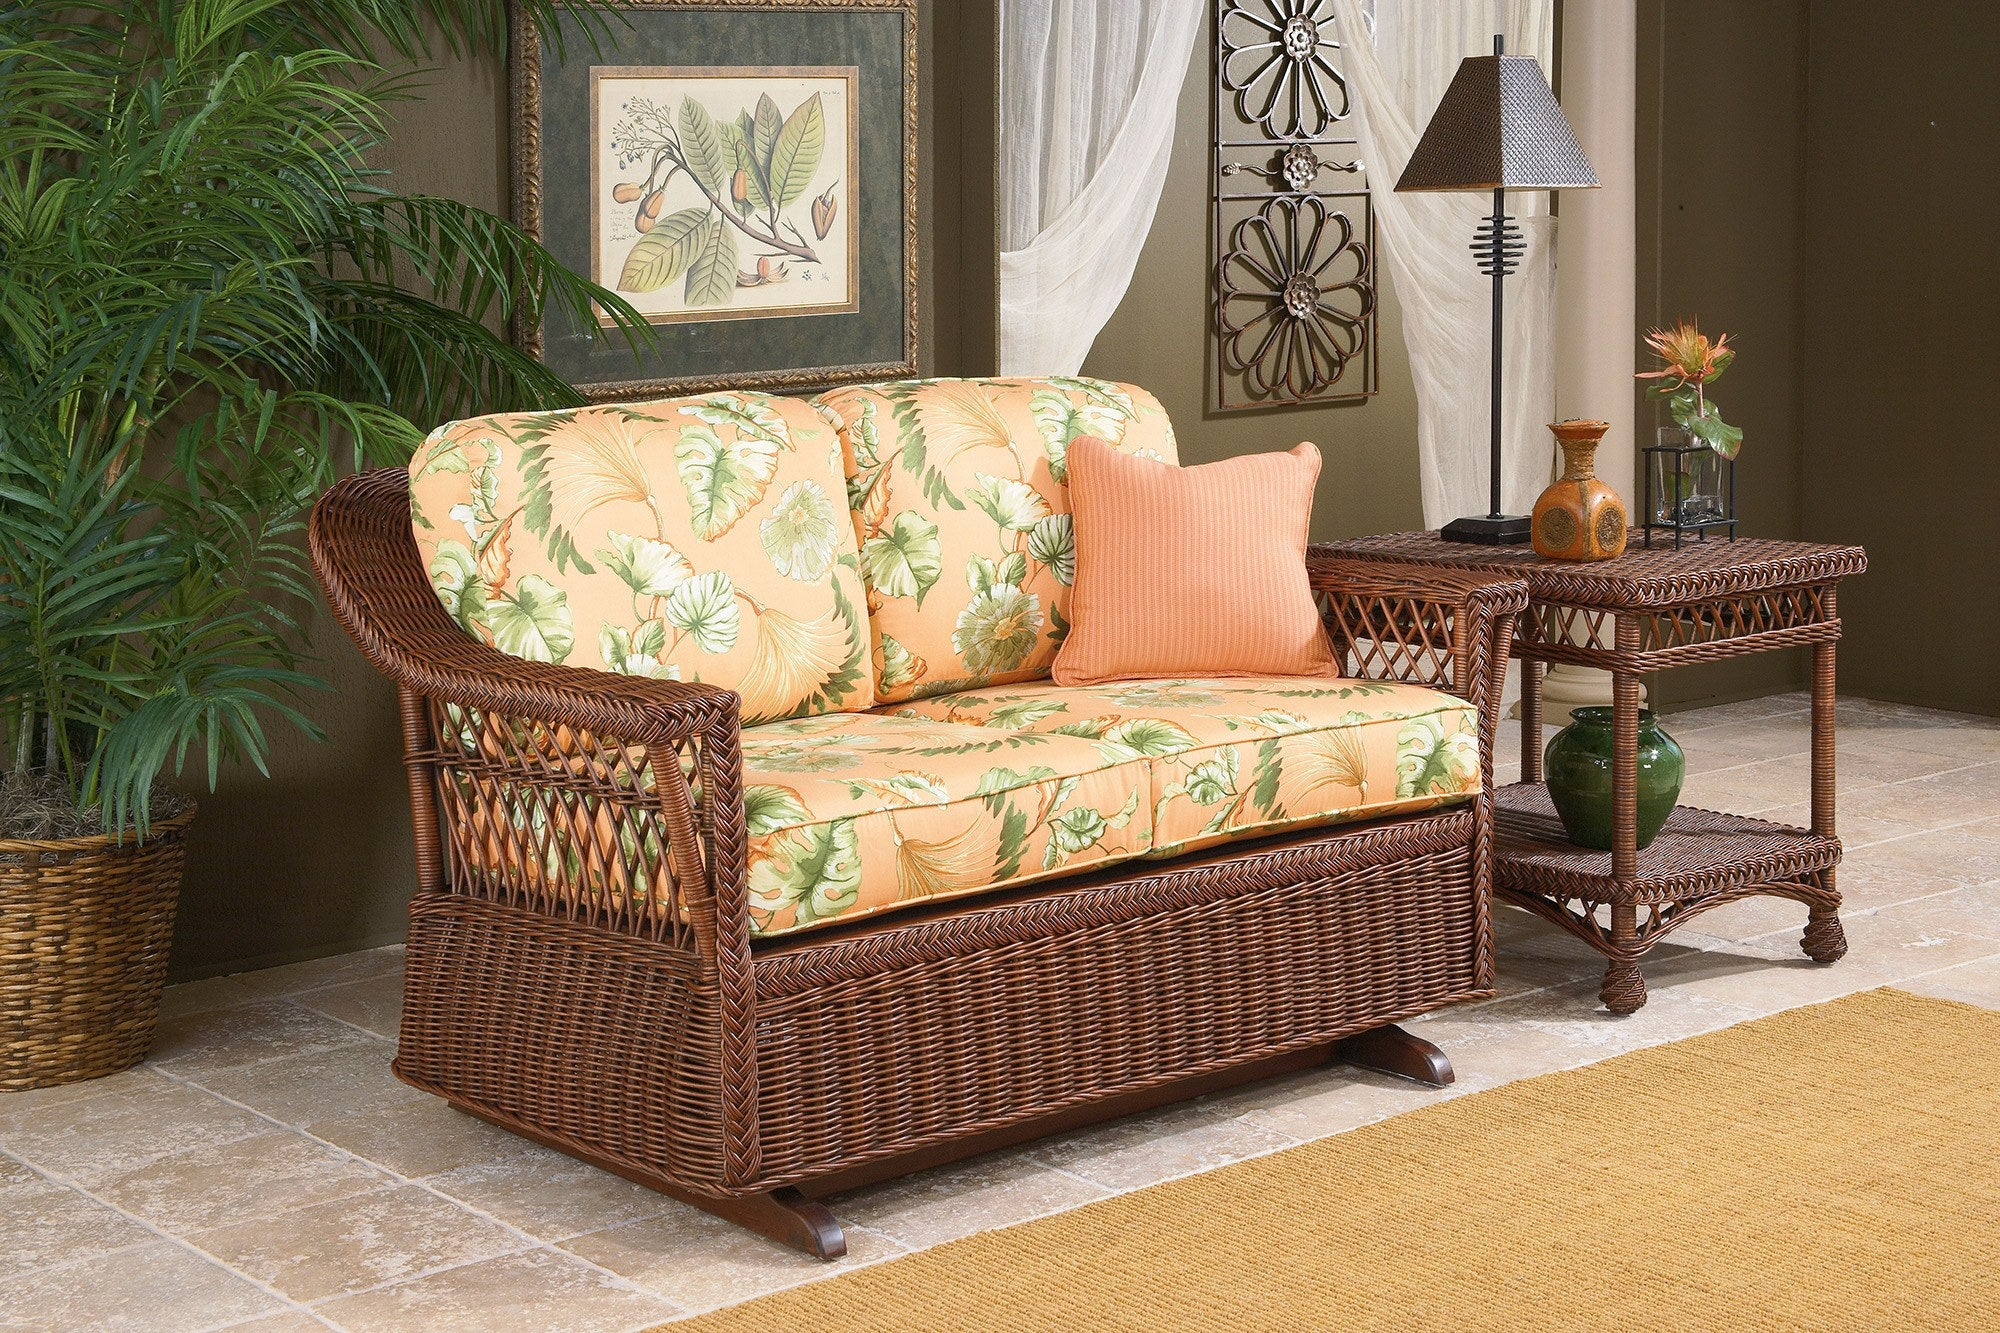 Designer Wicker & Rattan By Tribor Designer Wicker Bar Harbor Gliding Ottoman Ottoman - Rattan Imports